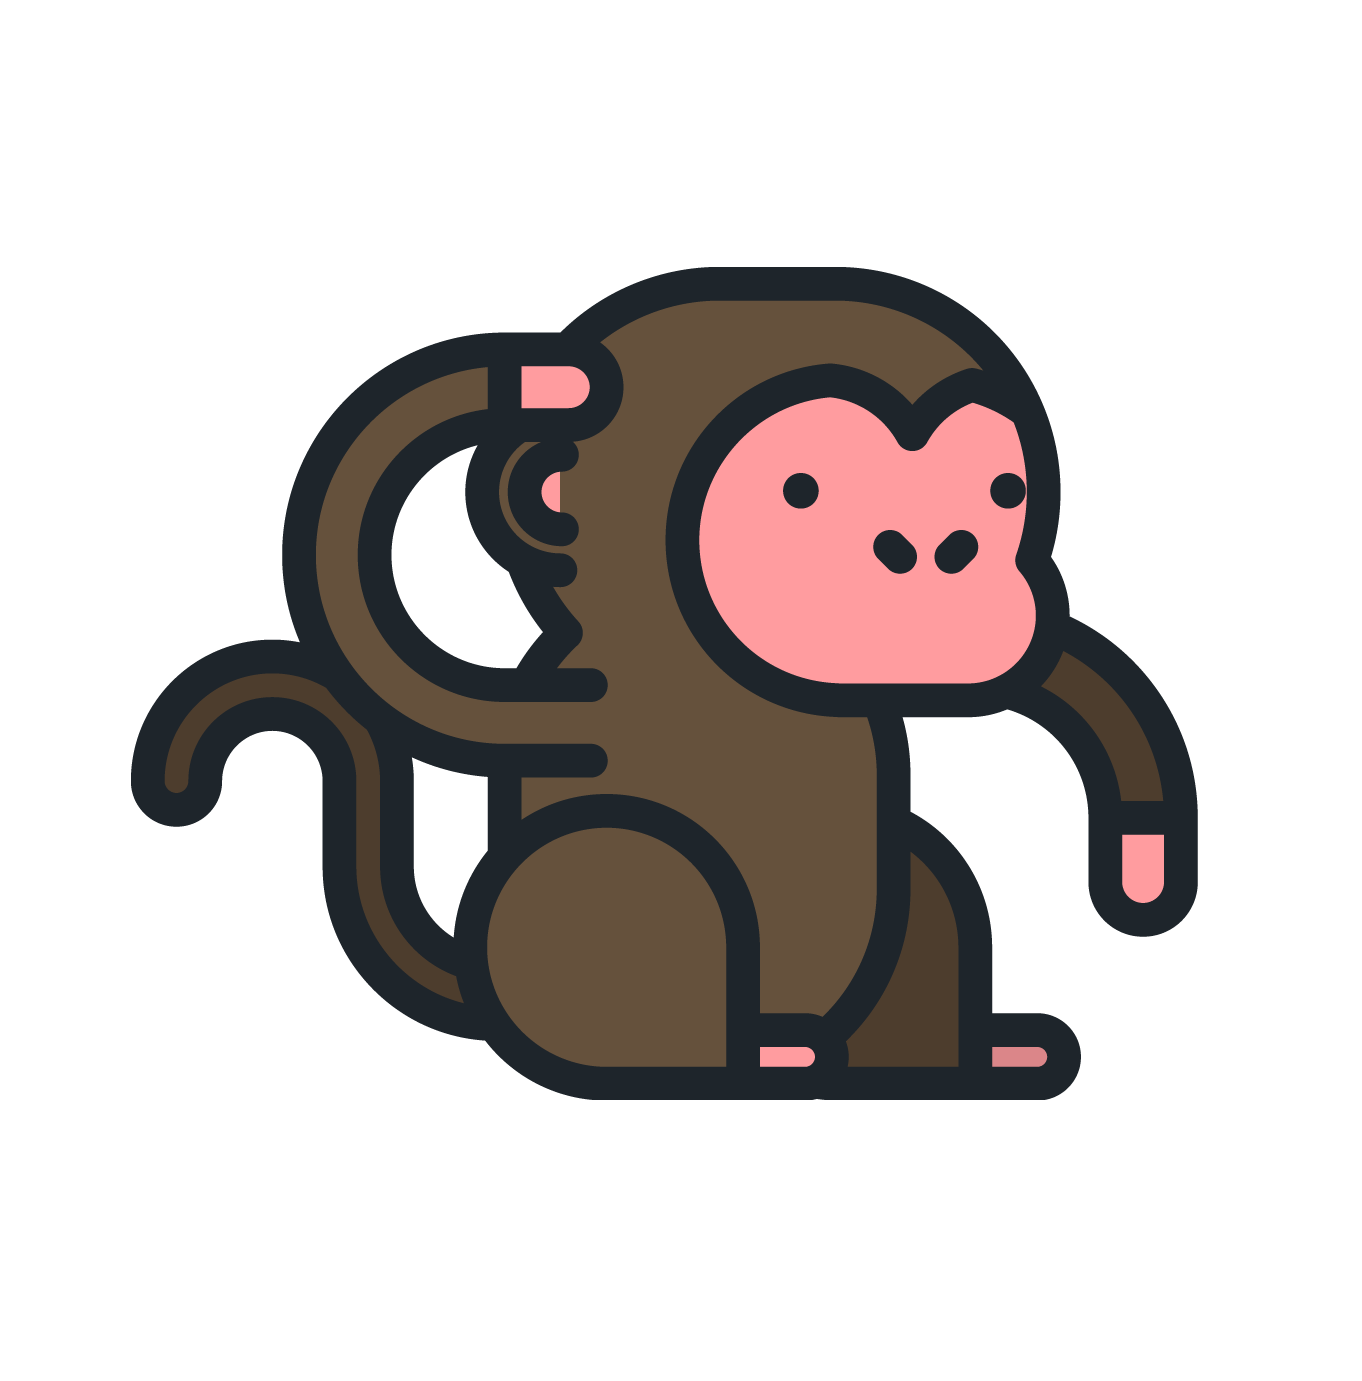 Network Chimp